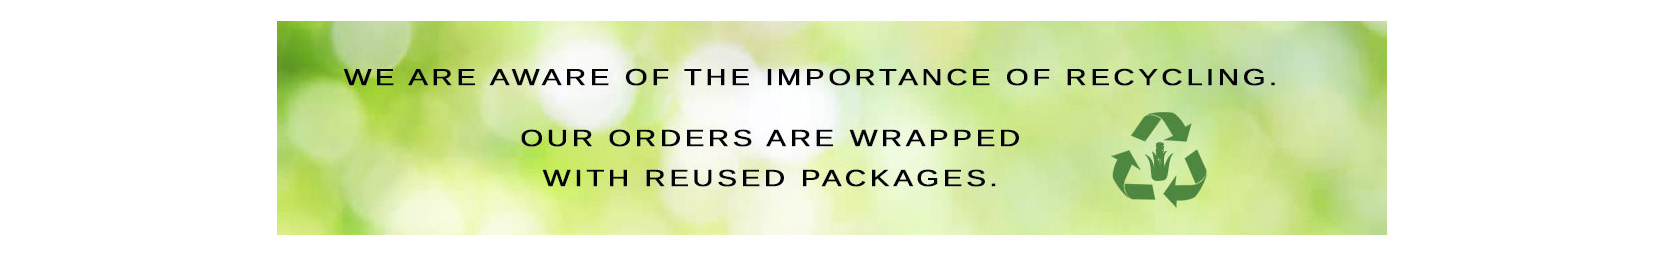 Our orders are wrapped with reused packages.